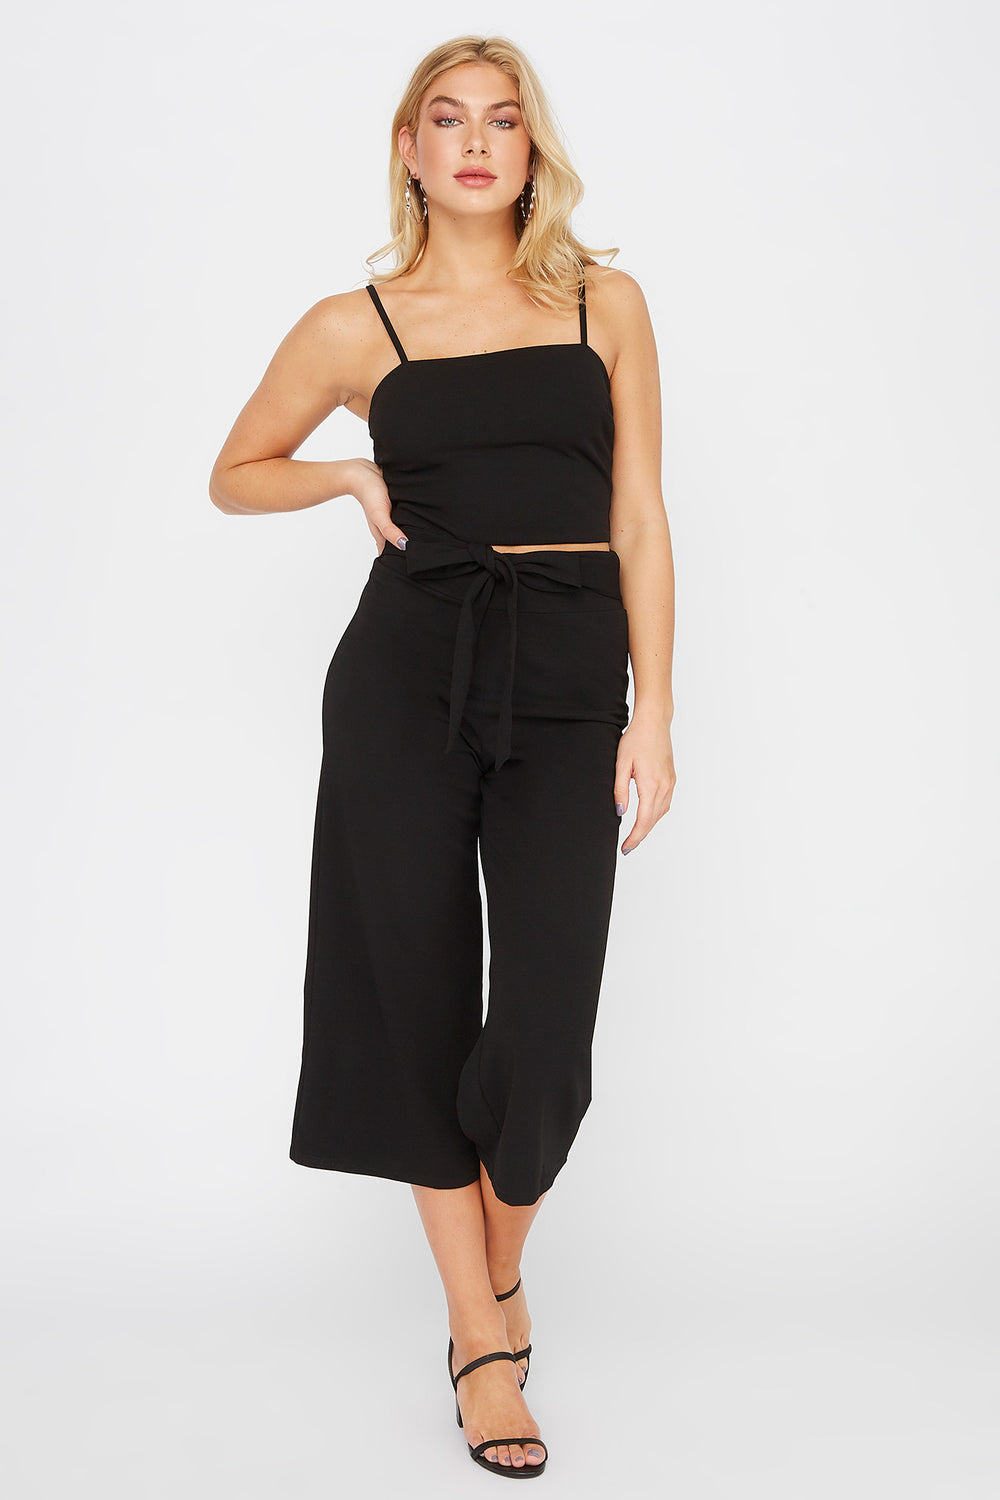 Cropped Crepe Square Neck Tank Black